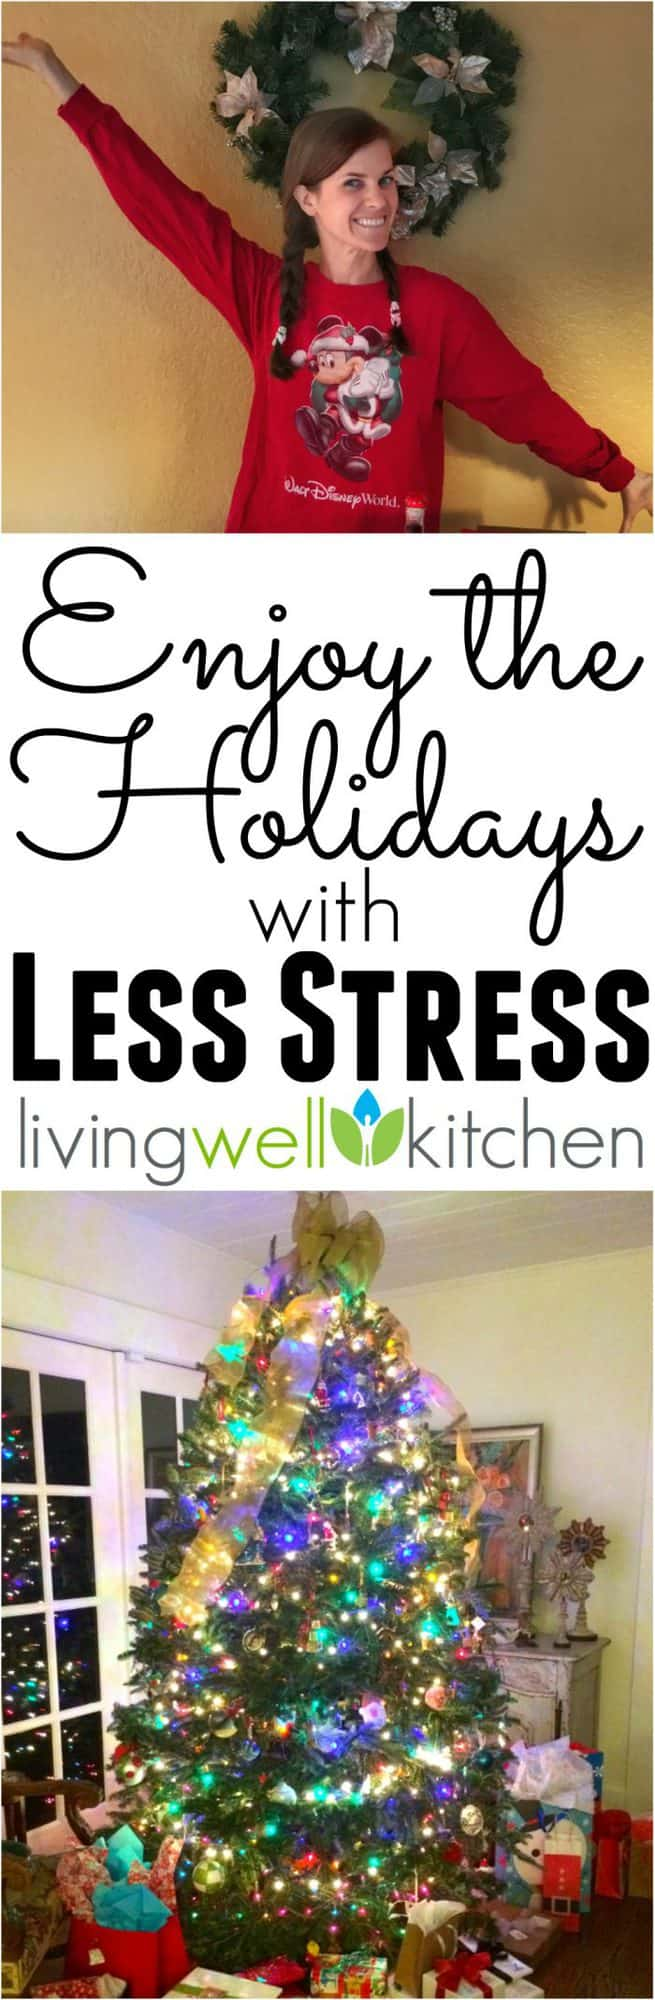 5 tips to help you stay sane over the Christmas season, so you can enjoy the holidays with less stress from @memeinge